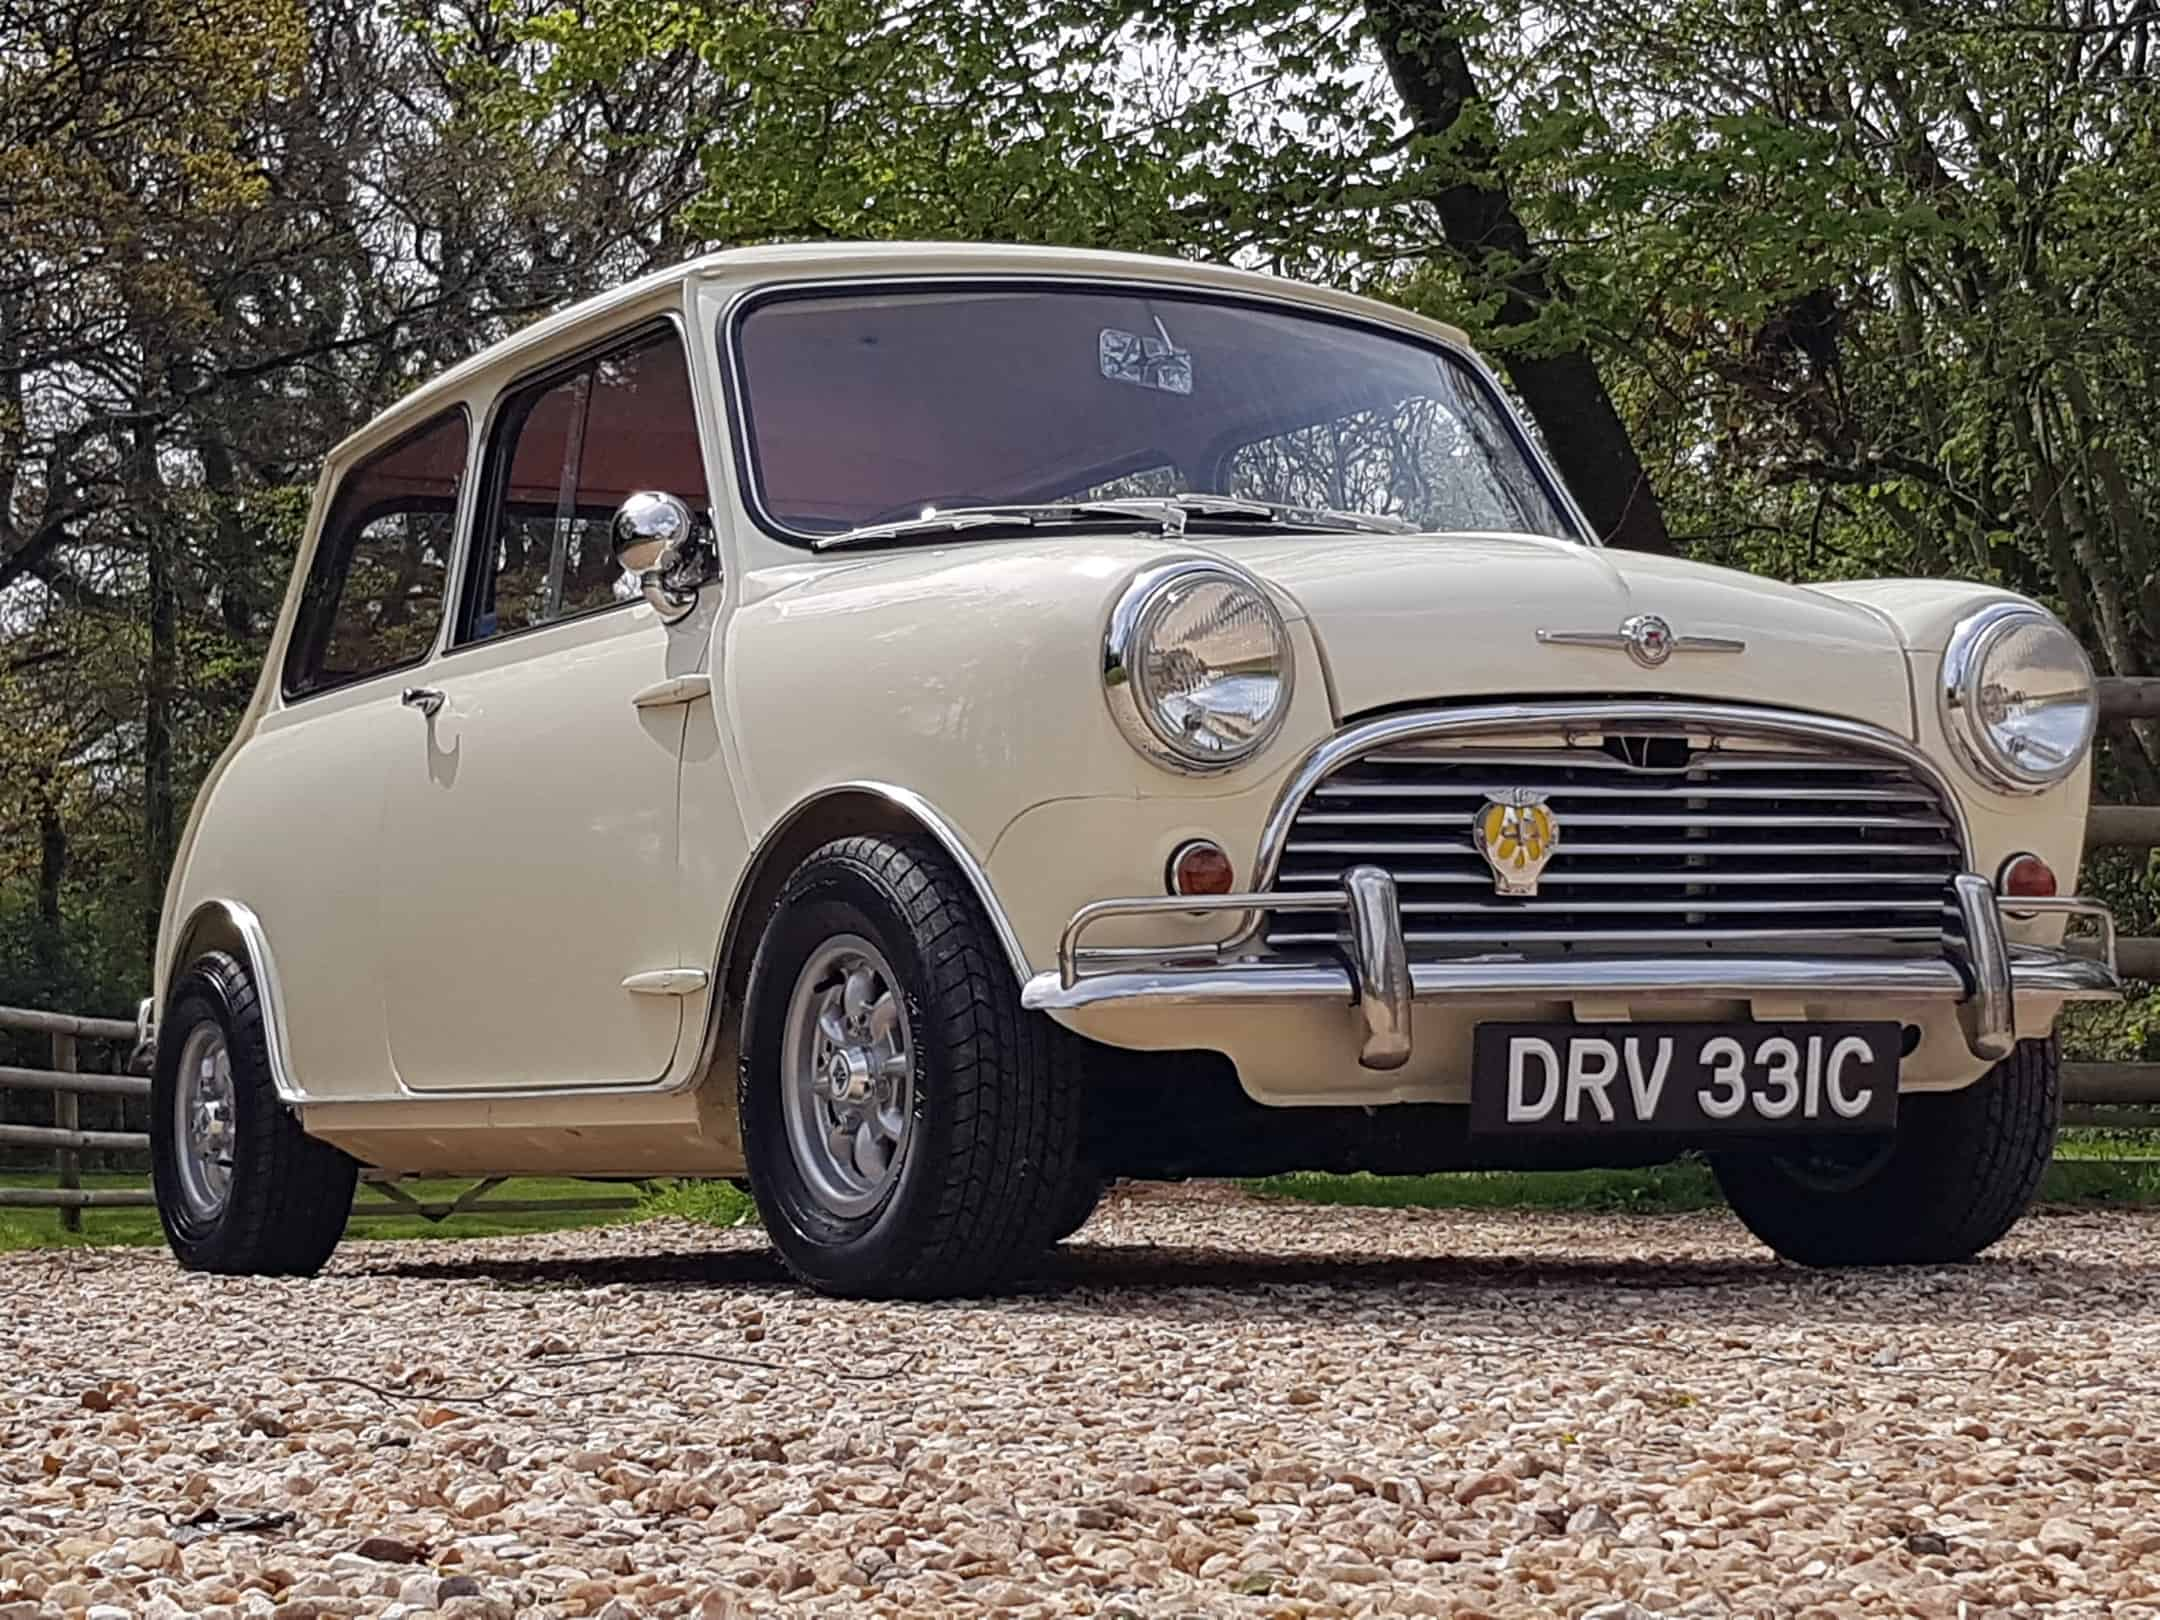 ** COMING SOON ** 1965 Morris Mini Mk1 In Old English White